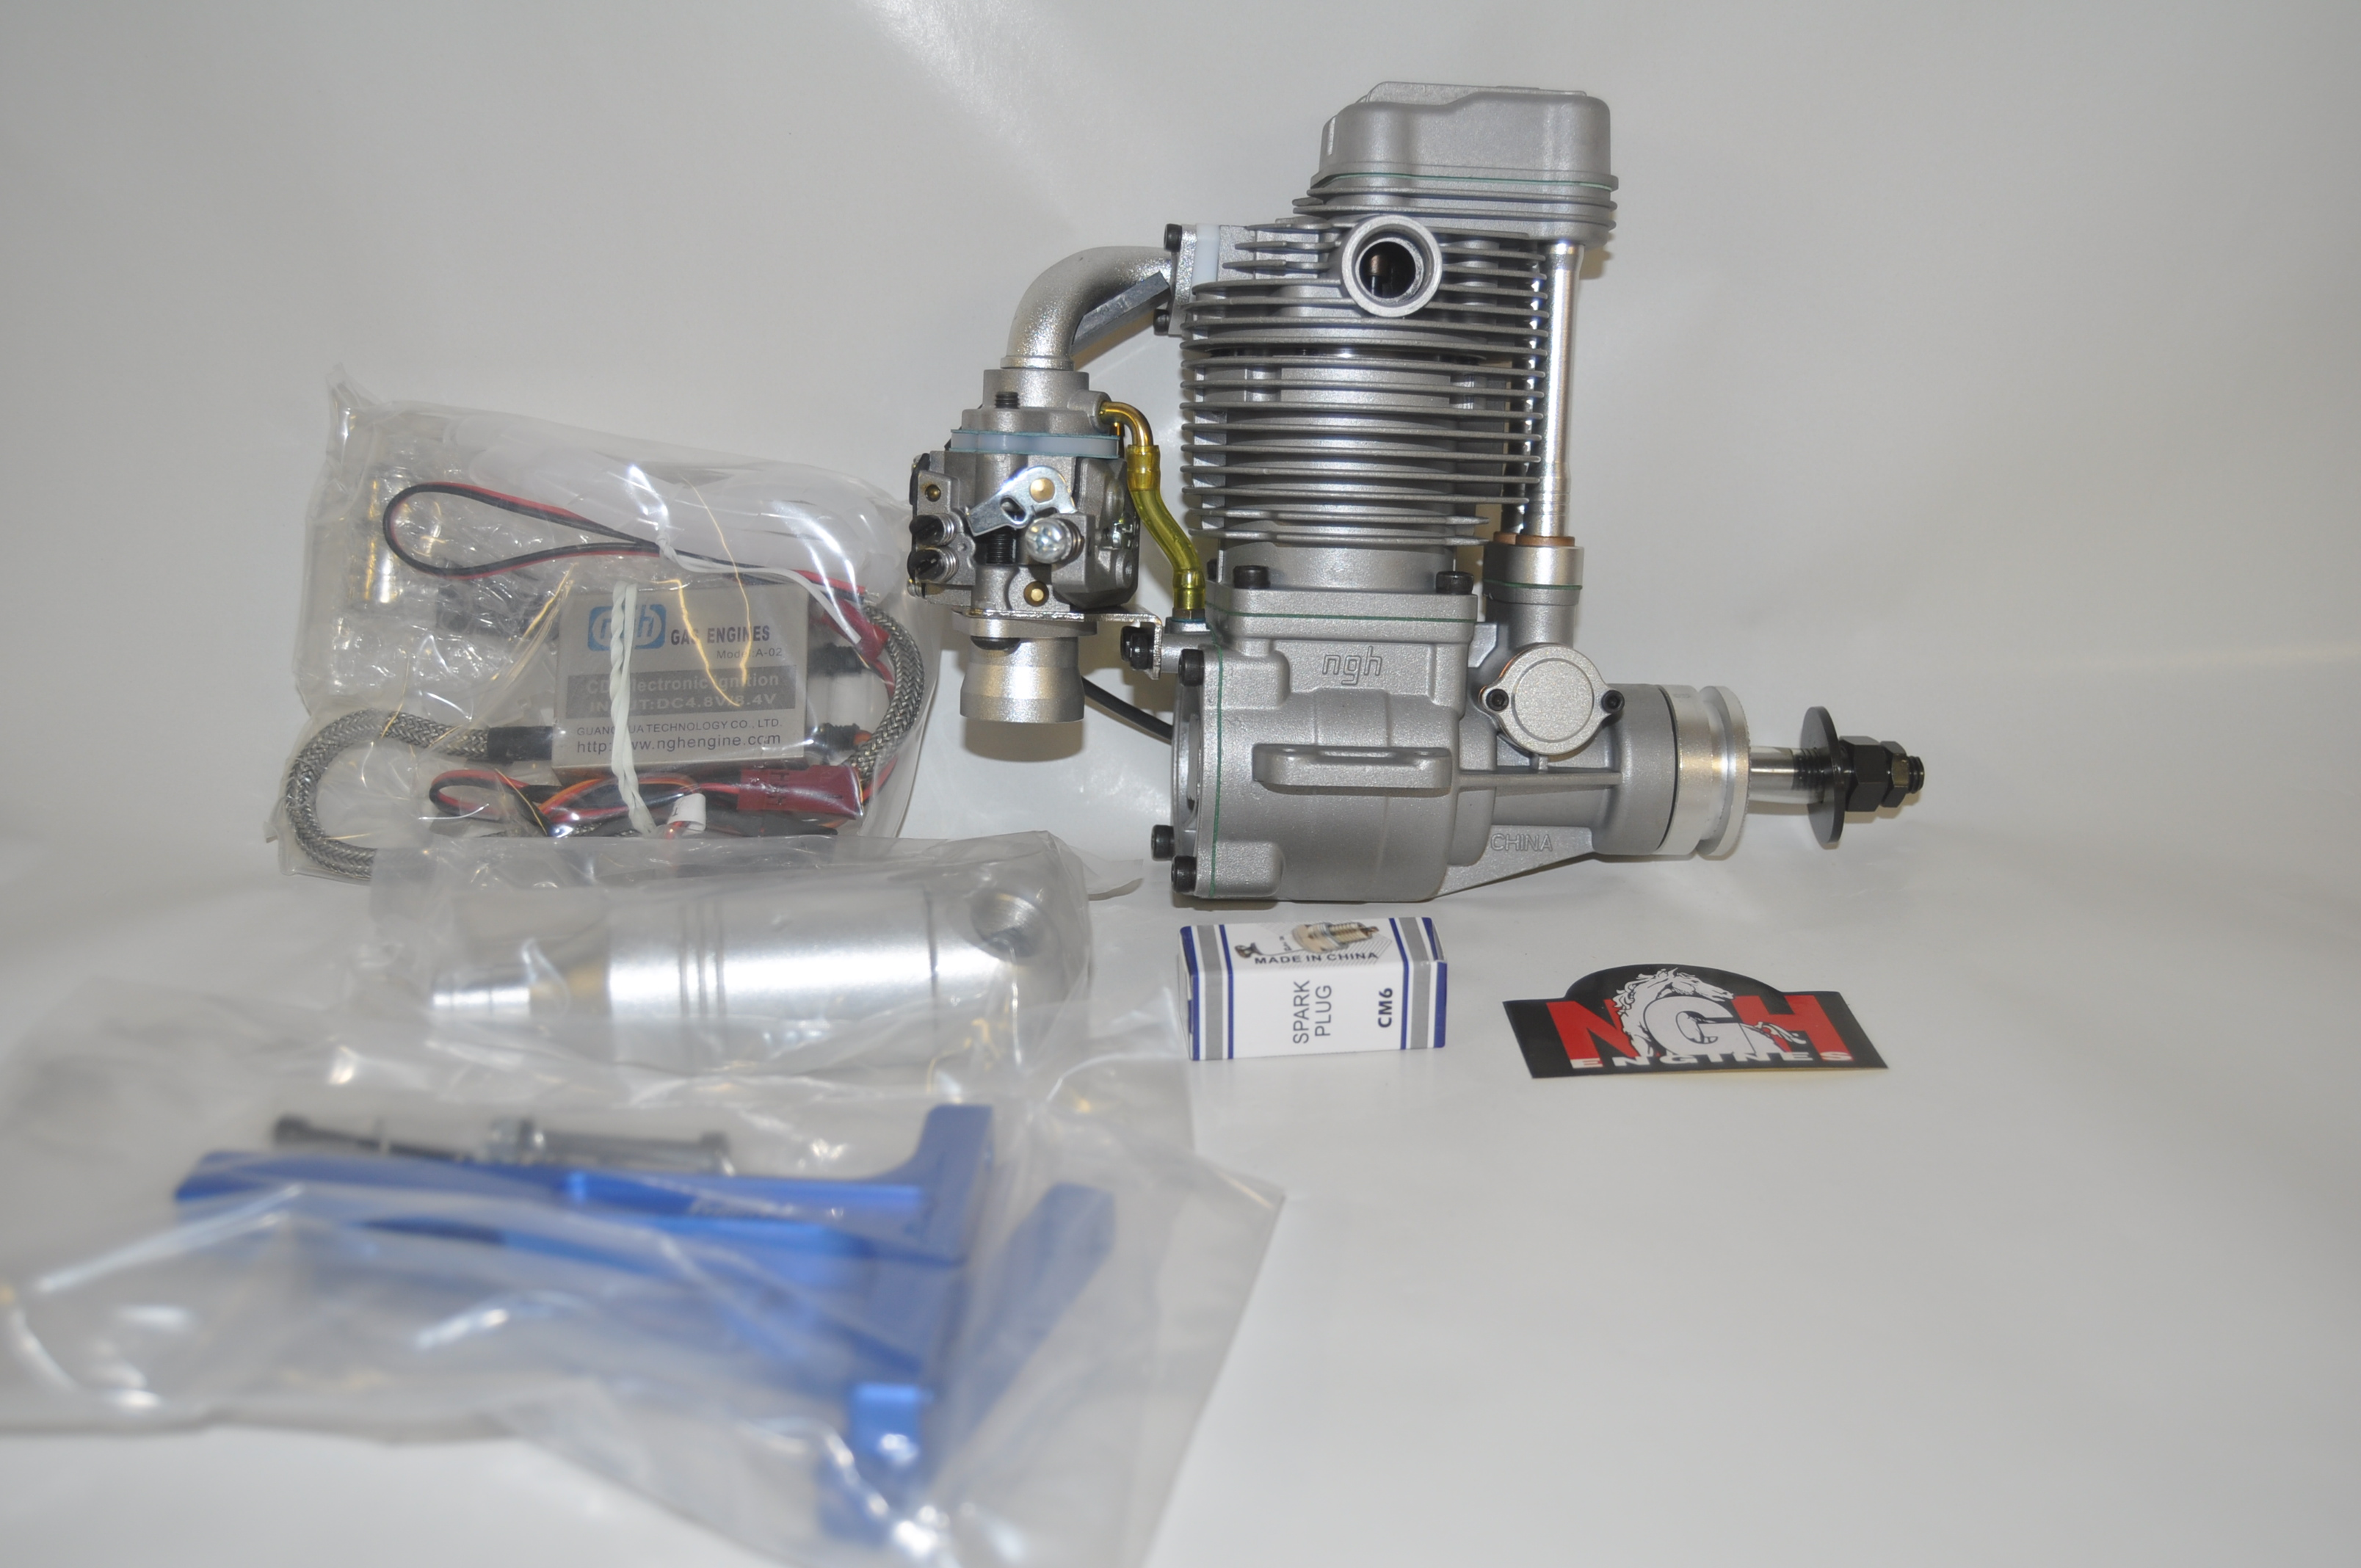 NGH-GF-30 4 Stroke engine